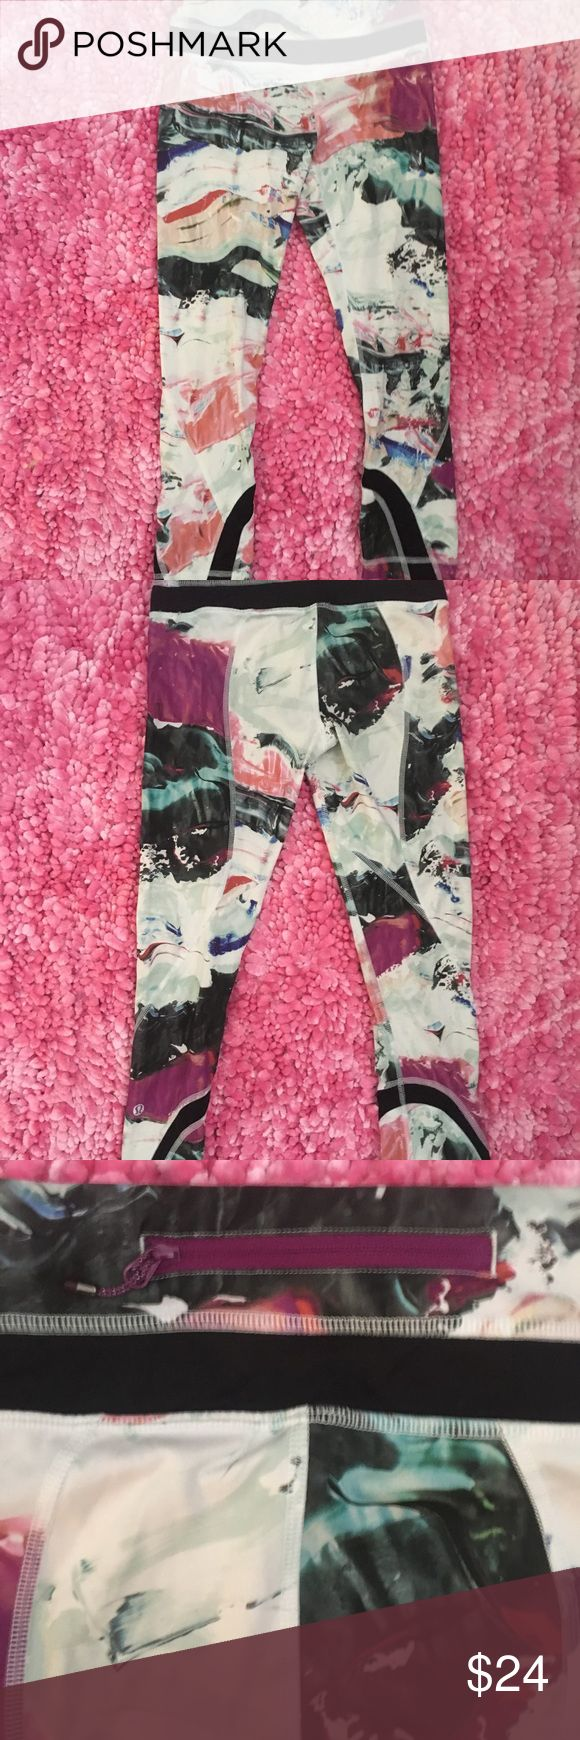 Lululemon Workout Pants | Size 2 Lululemon workout pants with floral / color patter! Adorable for the gym or daily errands. True to size: women's 2 lululemon athletica Pants Track Pants & Joggers